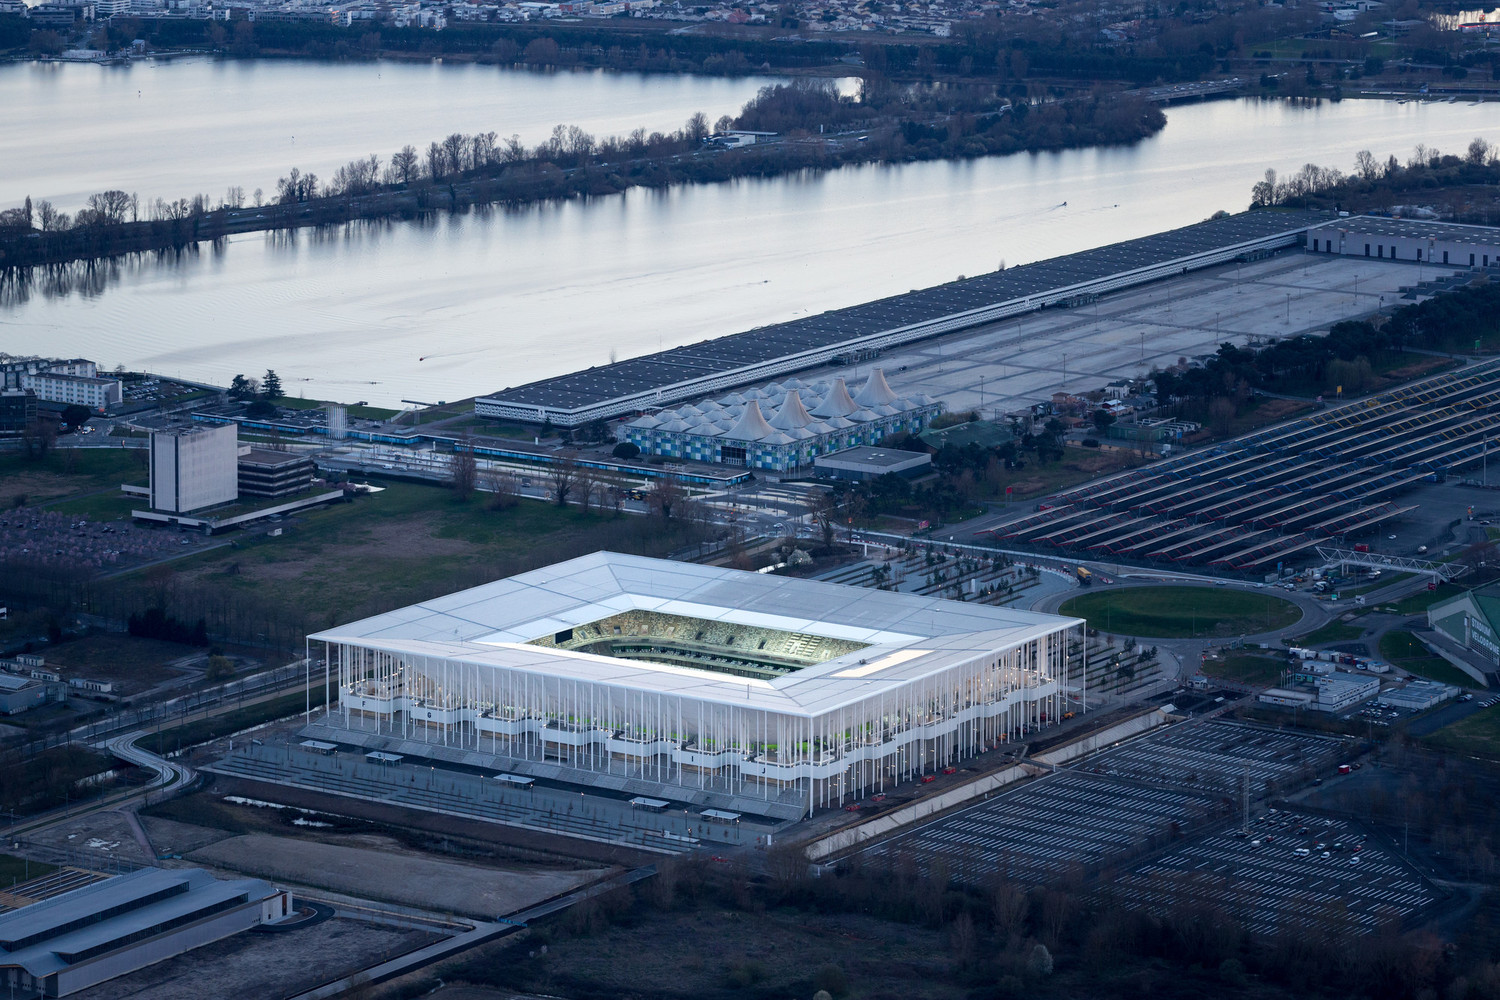 The_New_Bordeaux_Stadium_-_Herzog___de_Meuron._Image_%C2%A9_Iwan_Baan Archdaily dodijelio nagrade Building of the year